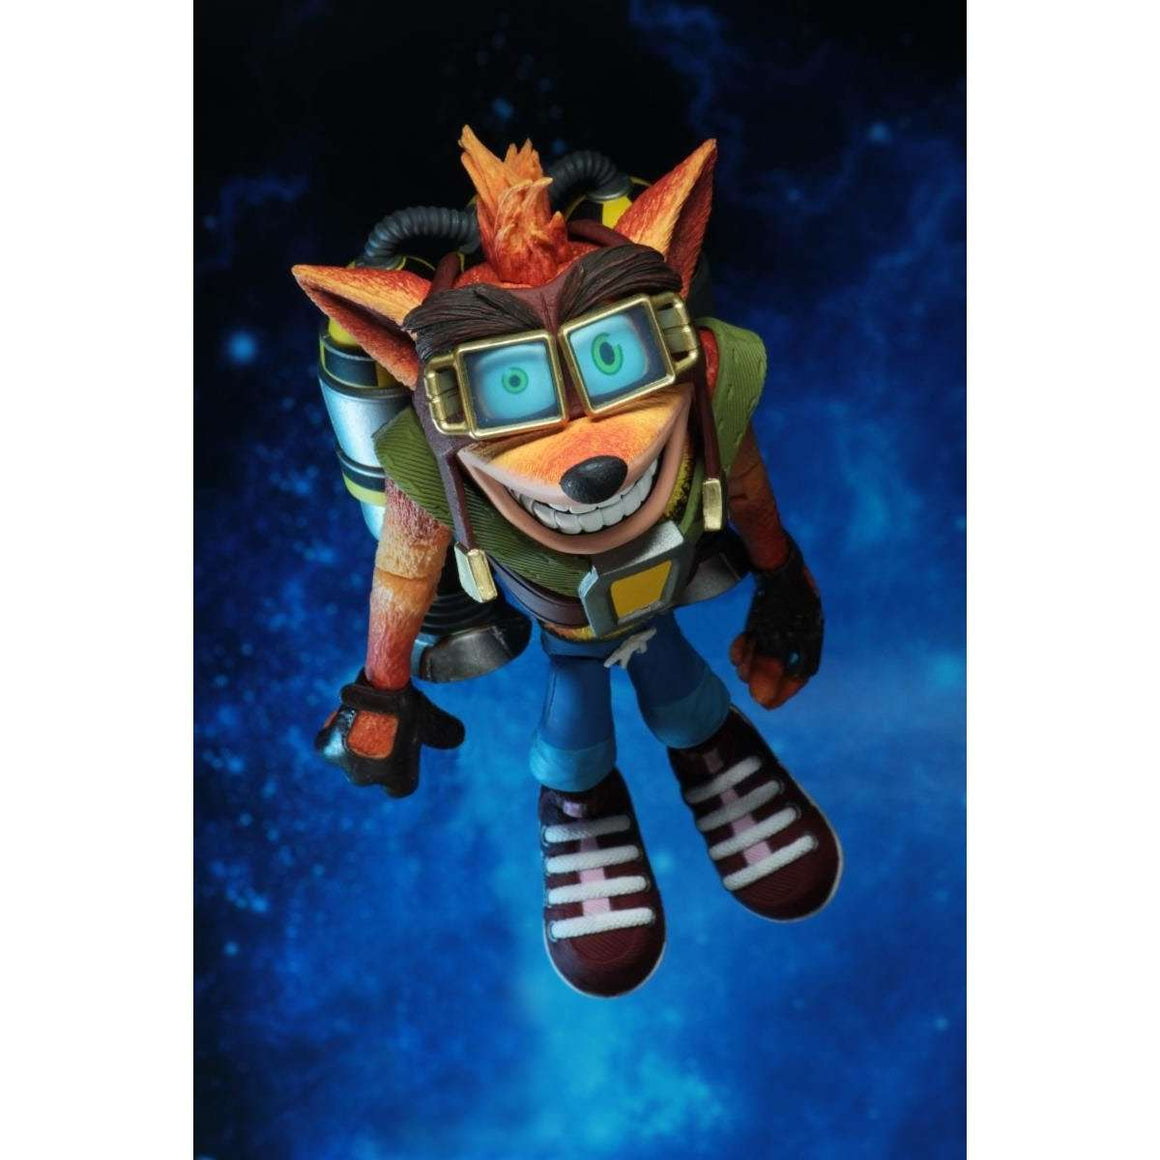 "Crash Bandicoot - 7"" Scale Action Figure - Deluxe Crash with Jetpack - NOVEMBER 2018"